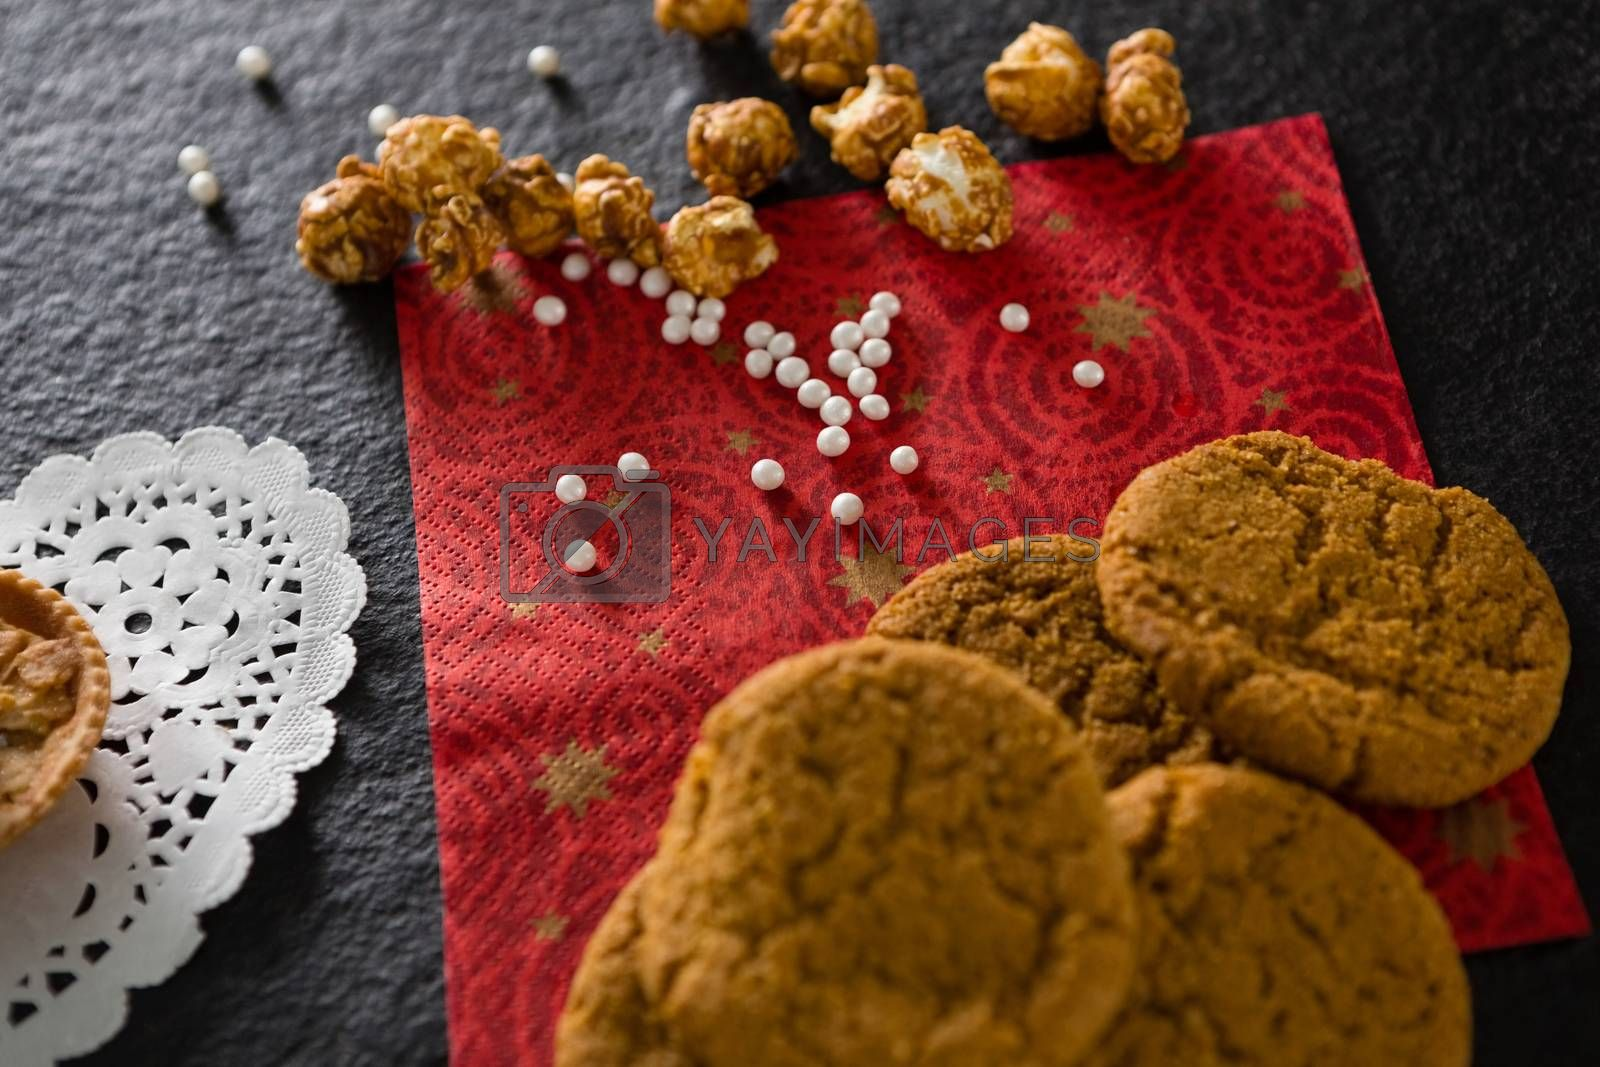 Cookies with pearls on red place mat by Wavebreakmedia